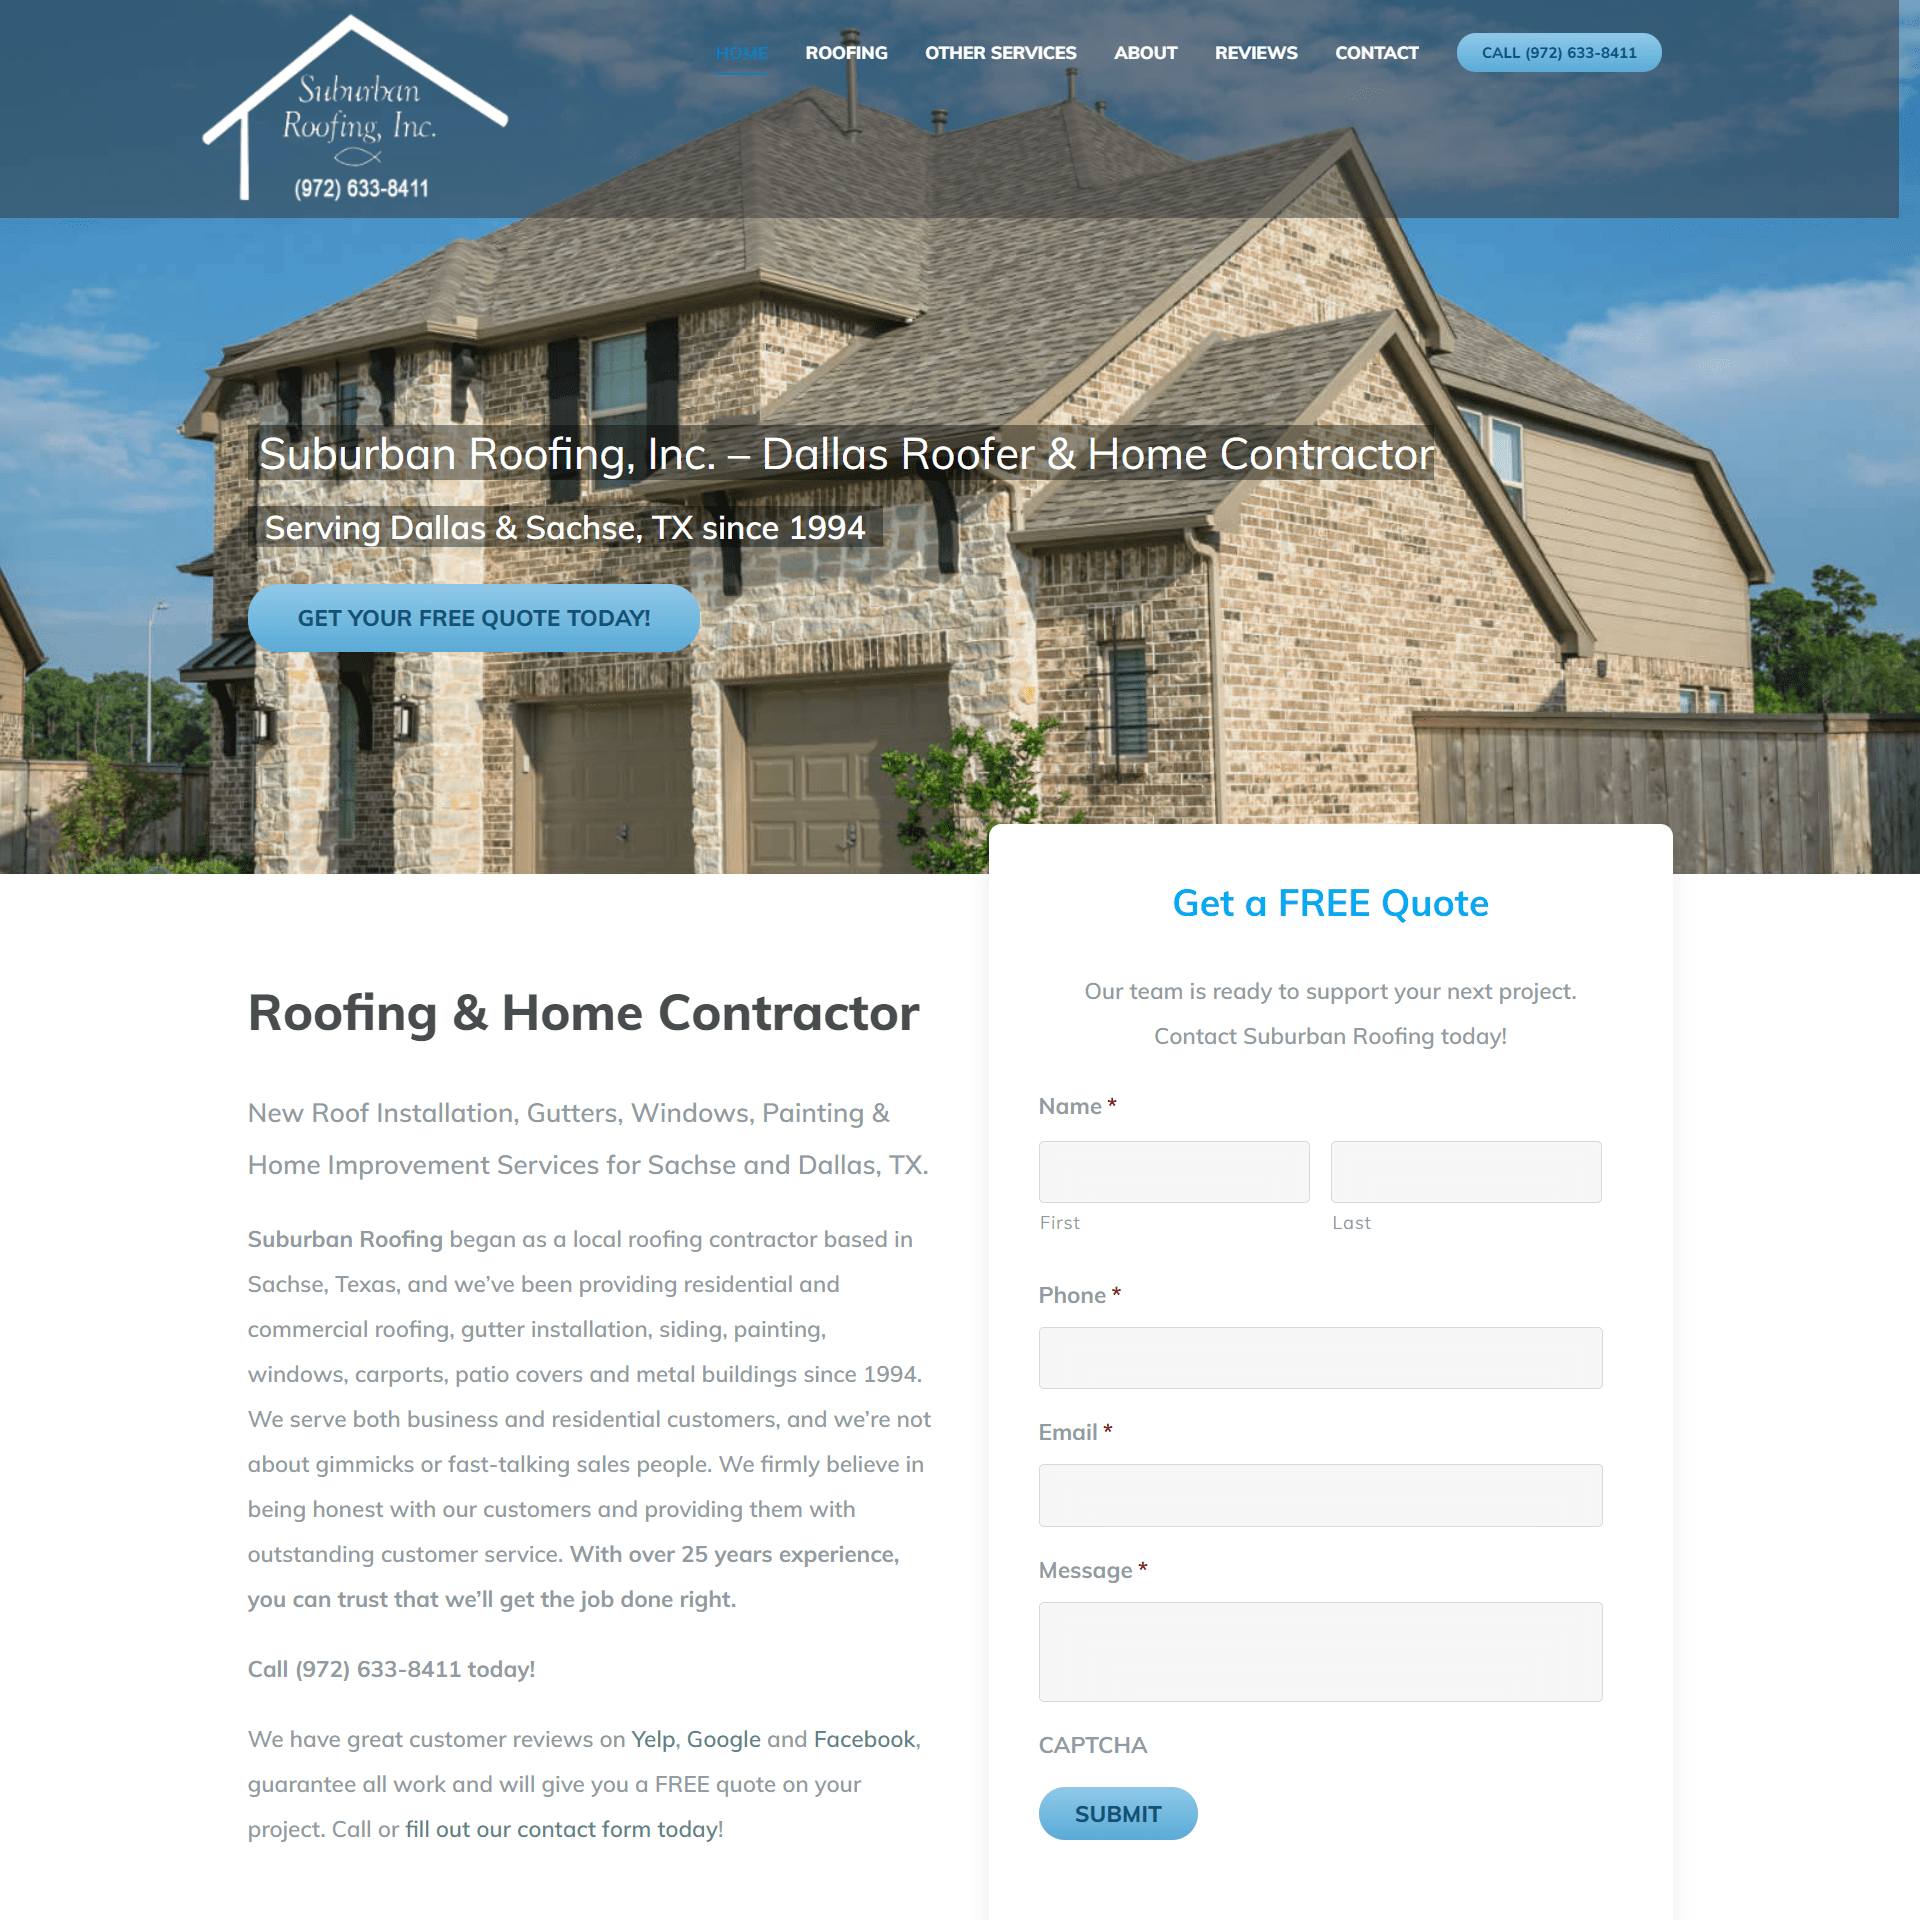 Suburban Roofing Website